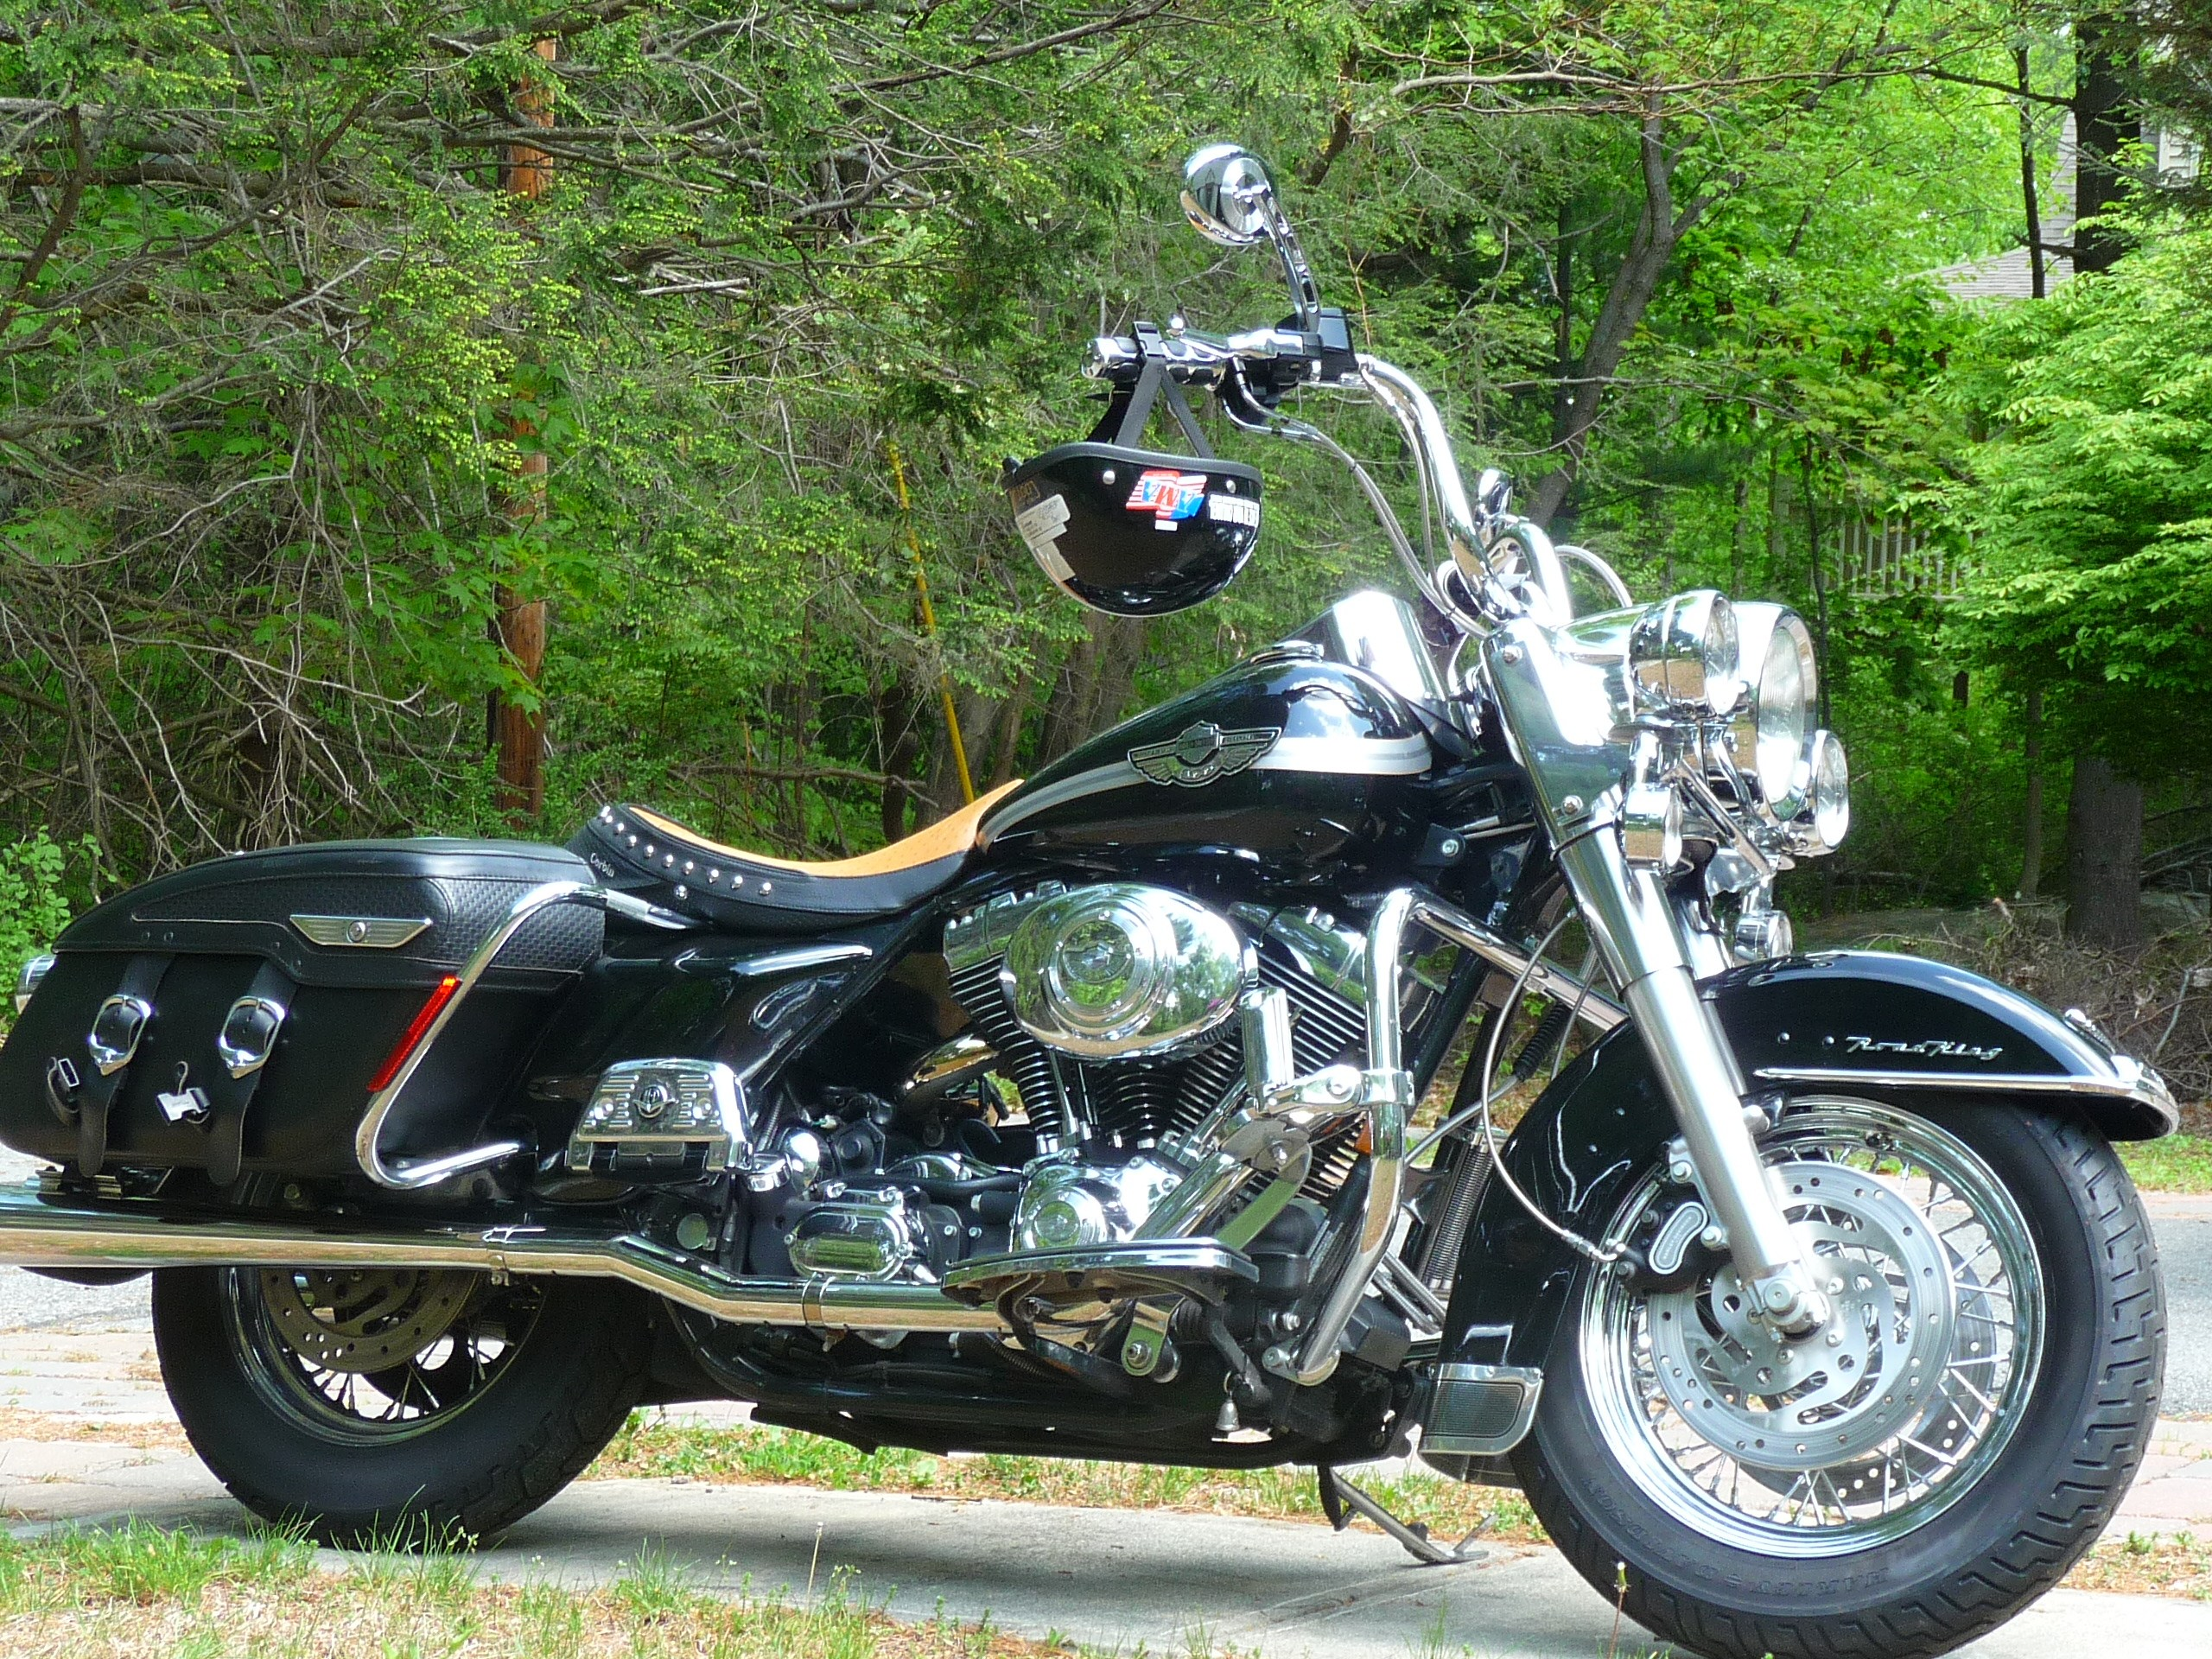 2003 harley davidson flhrc i anv road king classic anniversary black wanaque new jersey. Black Bedroom Furniture Sets. Home Design Ideas